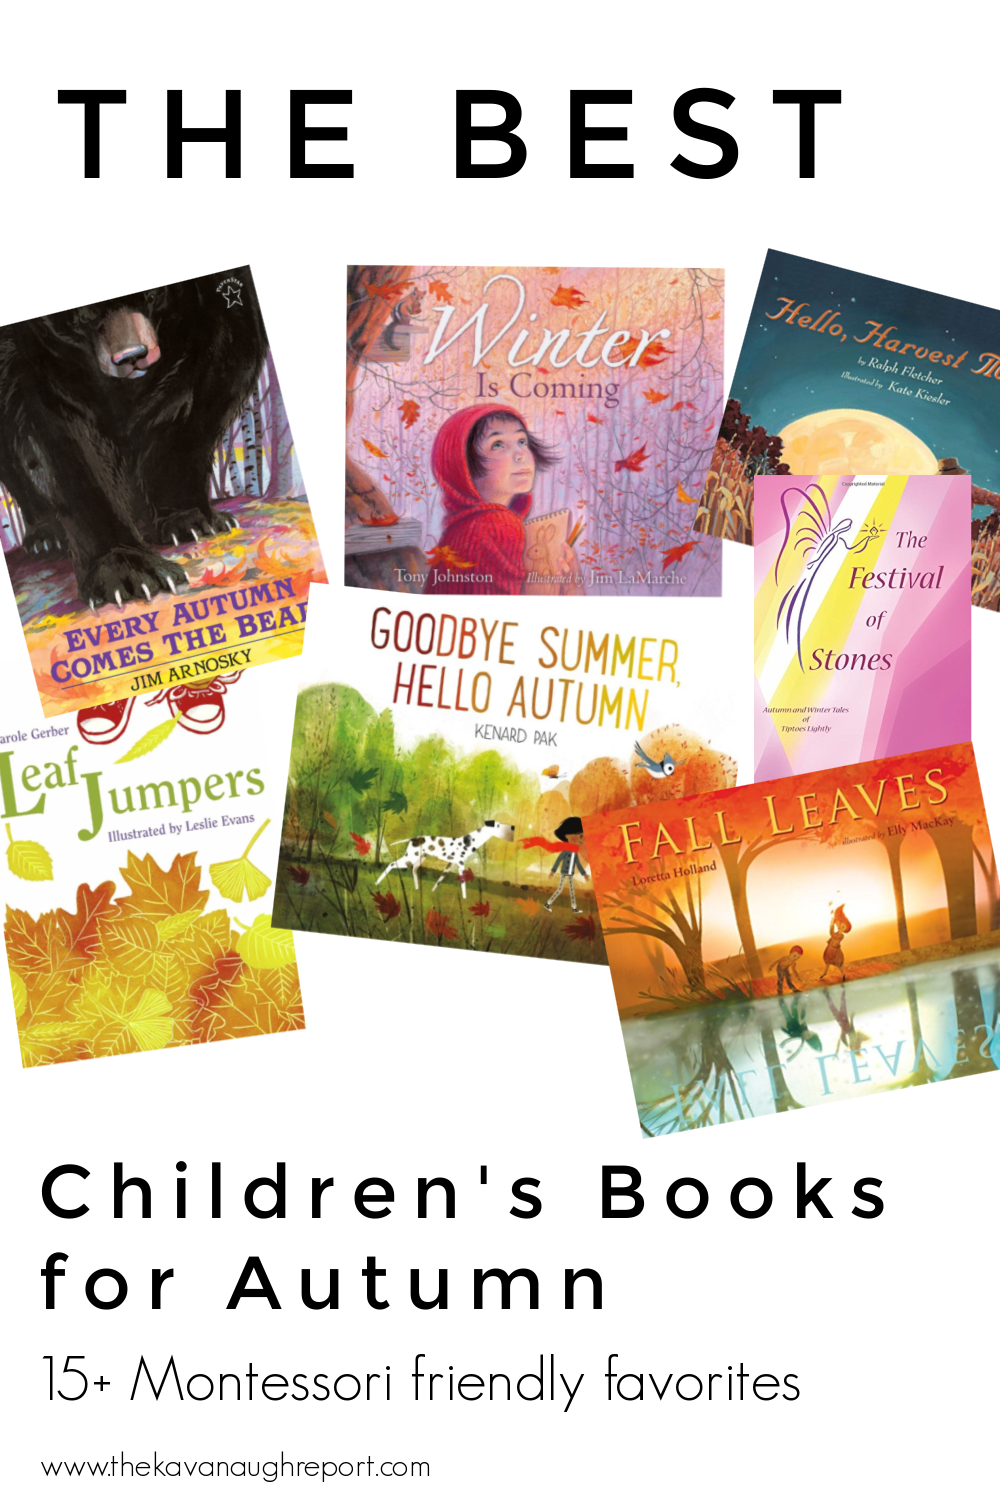 Montessori friendly books for toddlers and preschoolers for autumn. These books are great additions to celebrate the arrival of fall.